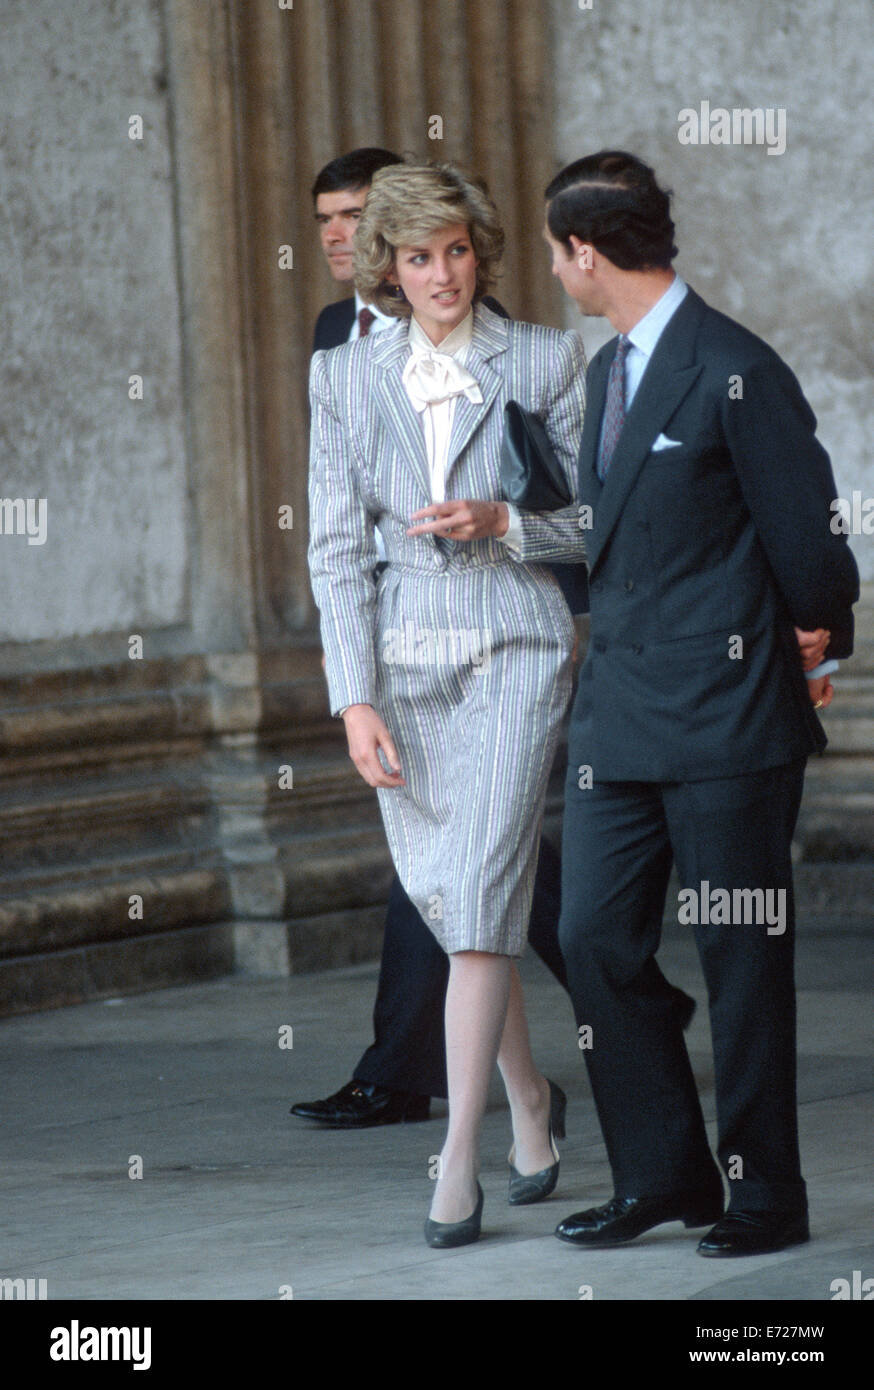 Diana prince when in rome very